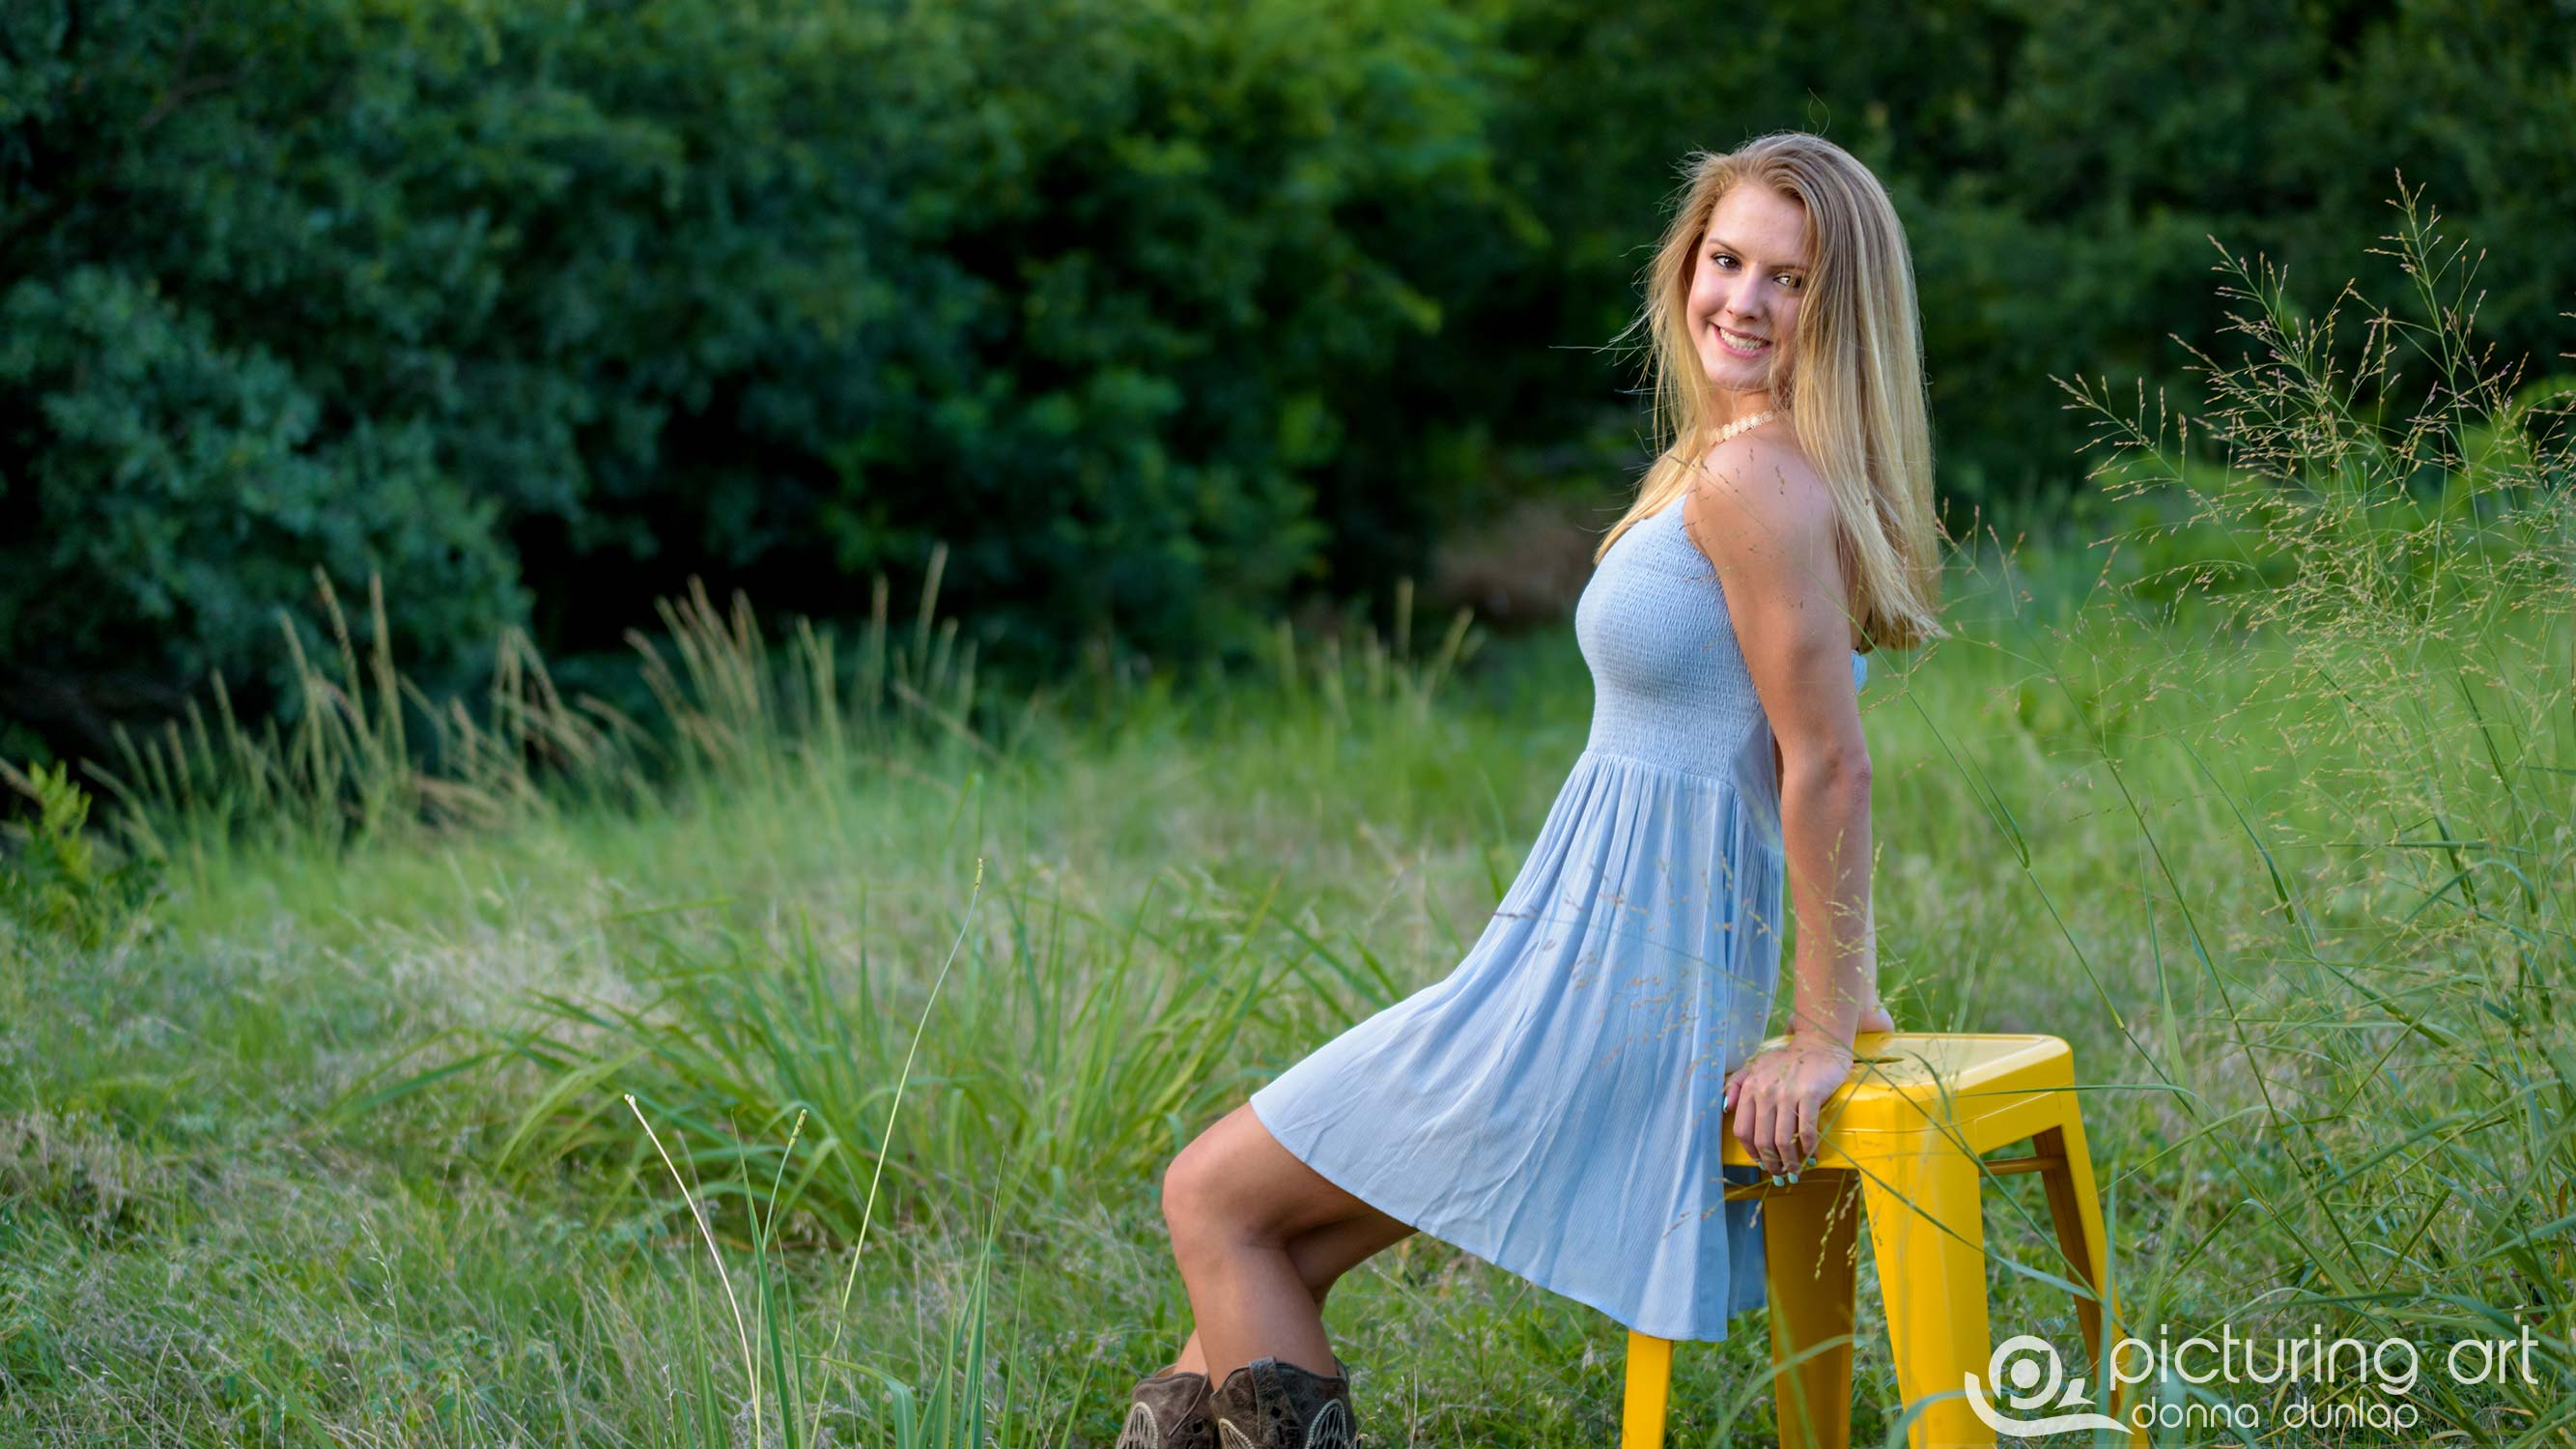 fusion, blond, girl, nature, field, pretty, senior, senior pic, senior pictures, class of 2018, grad, graduate, Plano, Plano tx, plano texas, arbor hills nature preserve,